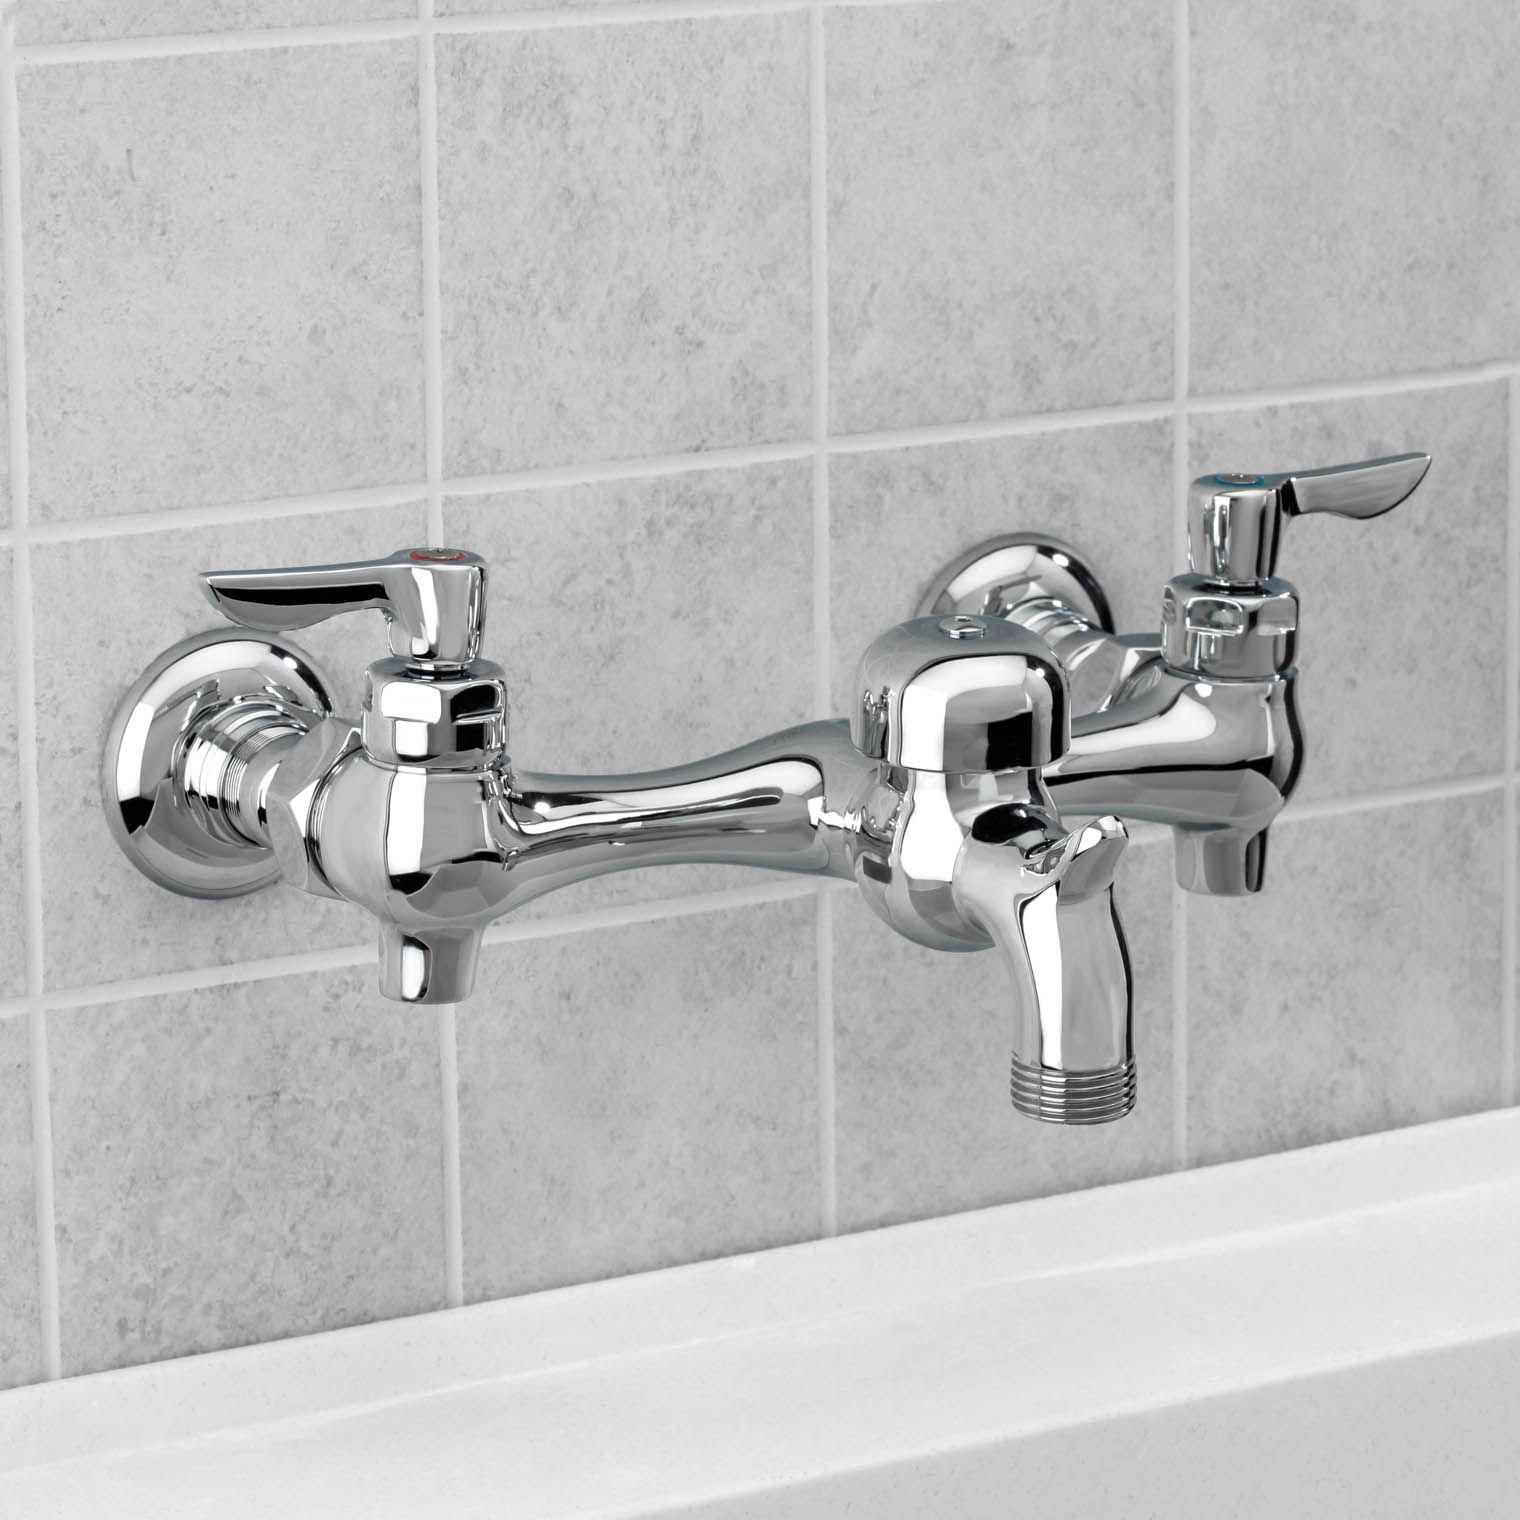 Wall Mount Utility Sink Faucet With Images Sink Faucets